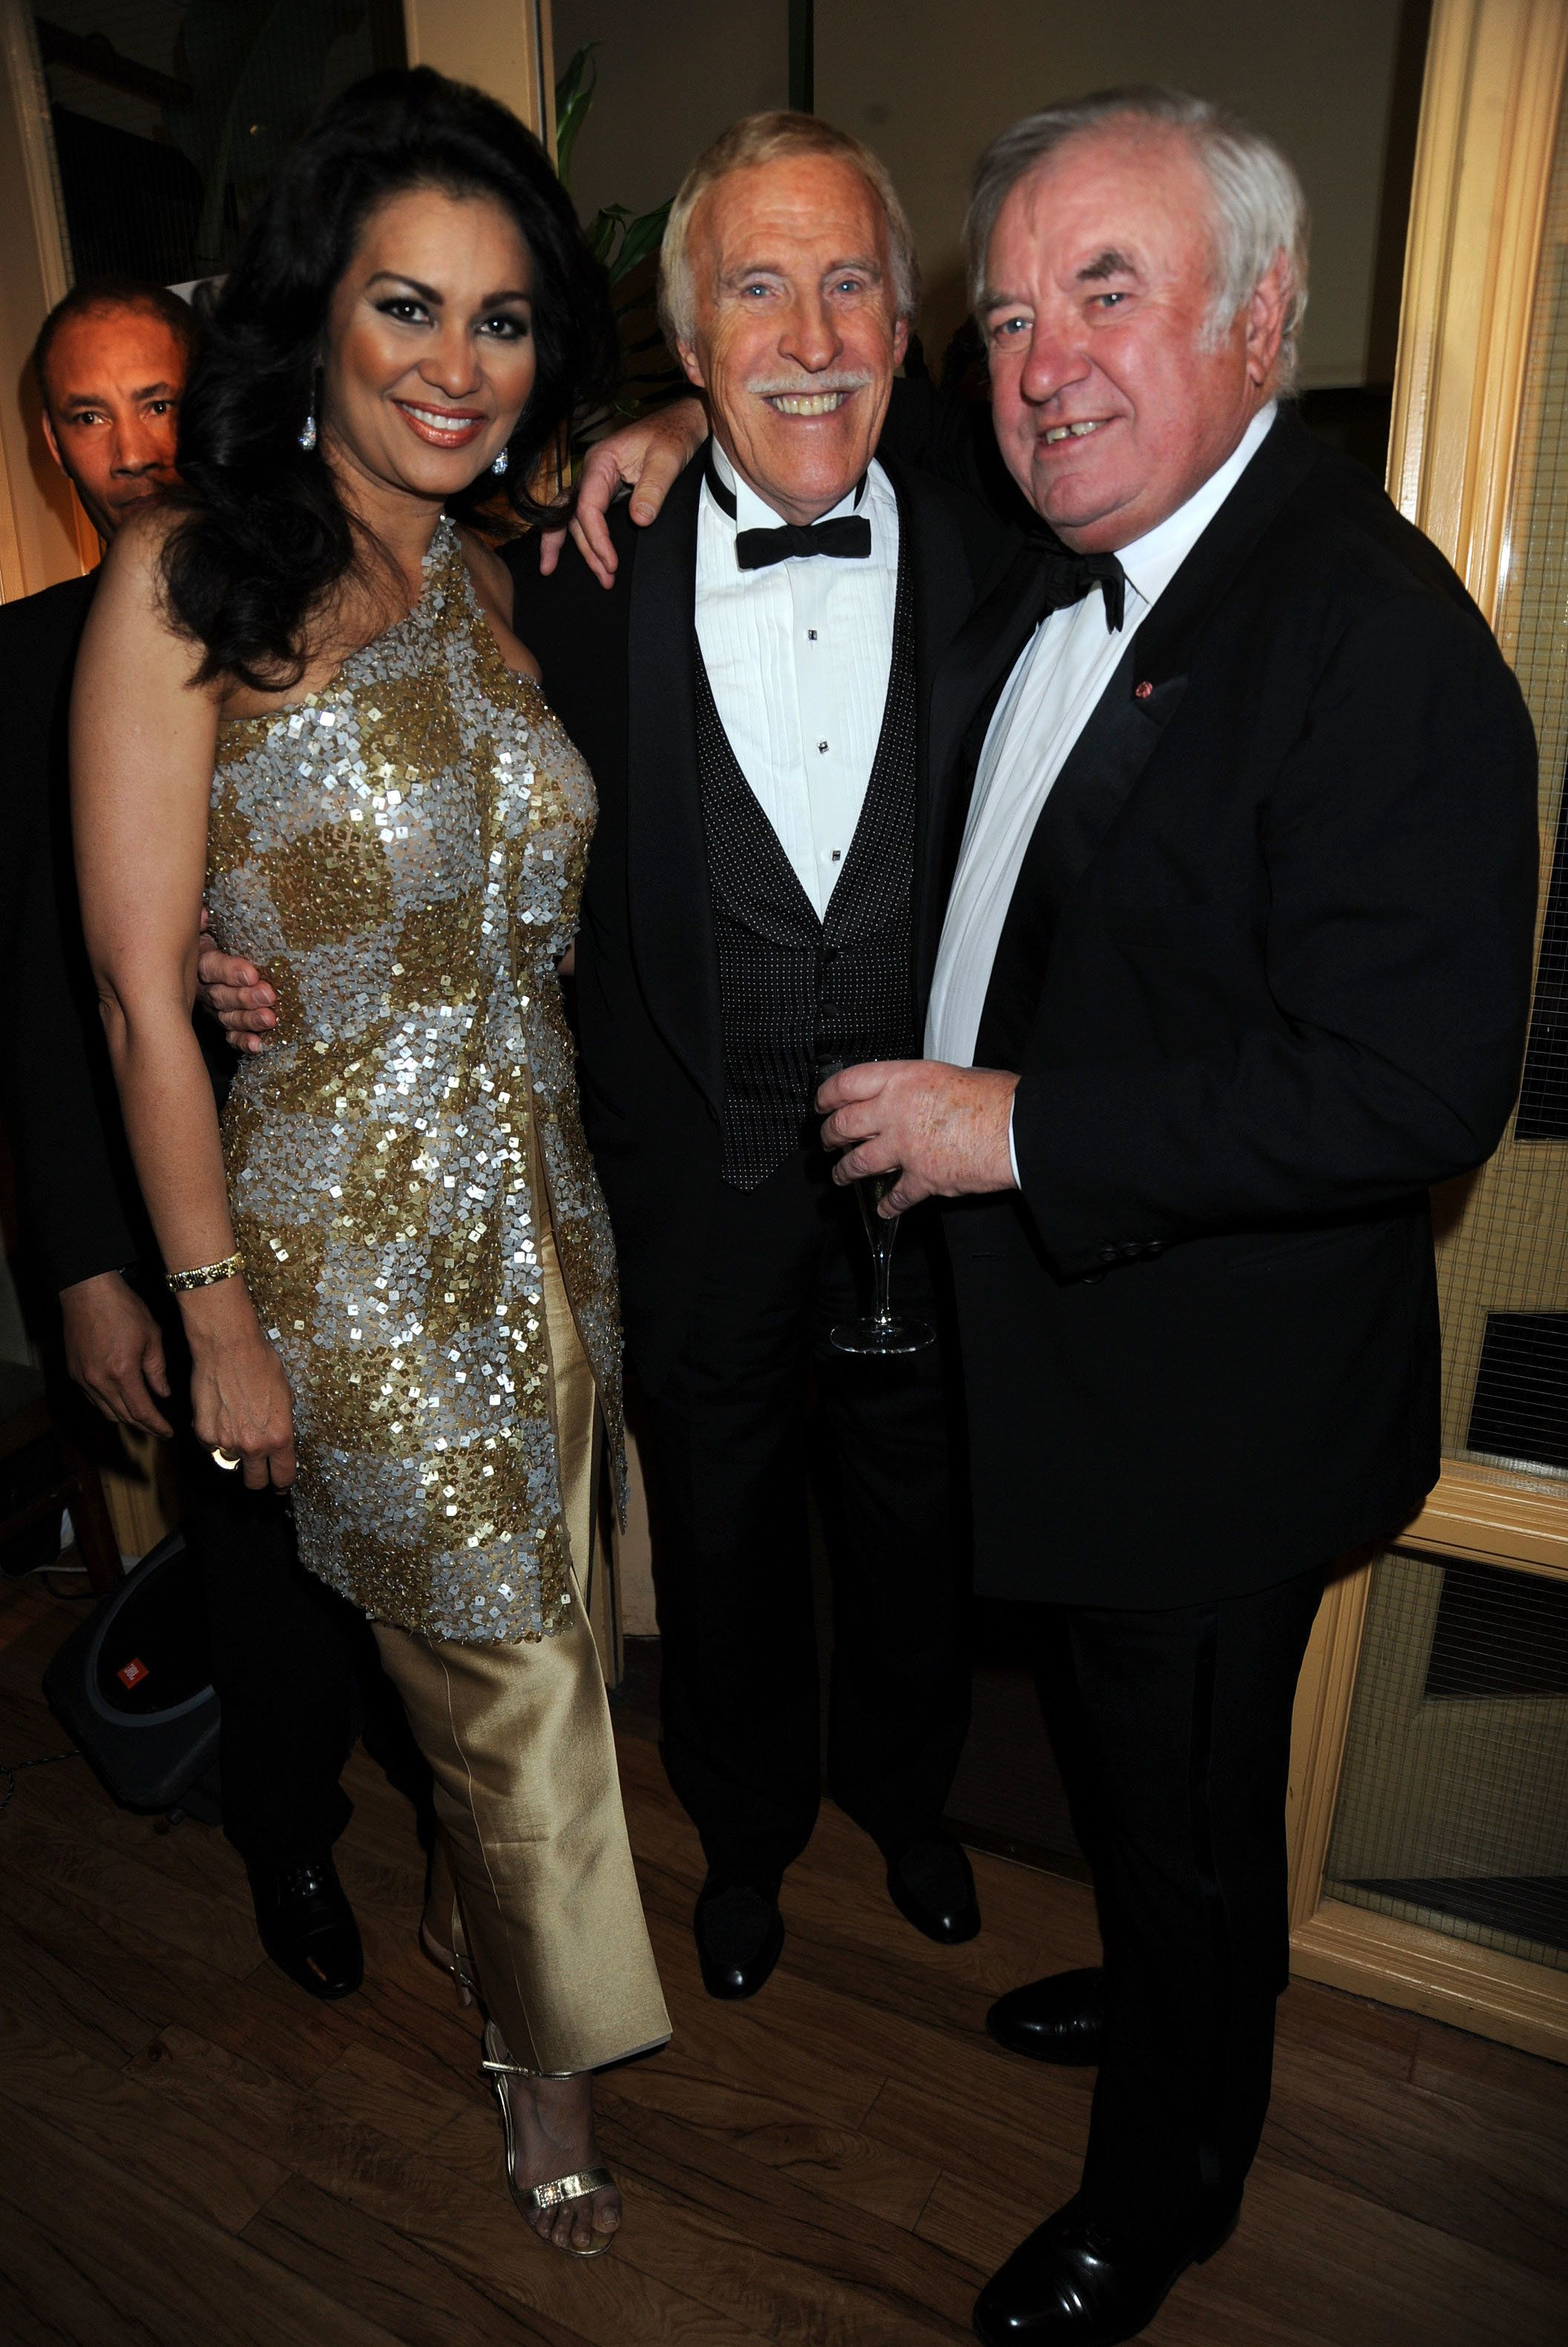 Bruce Forsyth with his wife, Wilnelia, and Jimmy